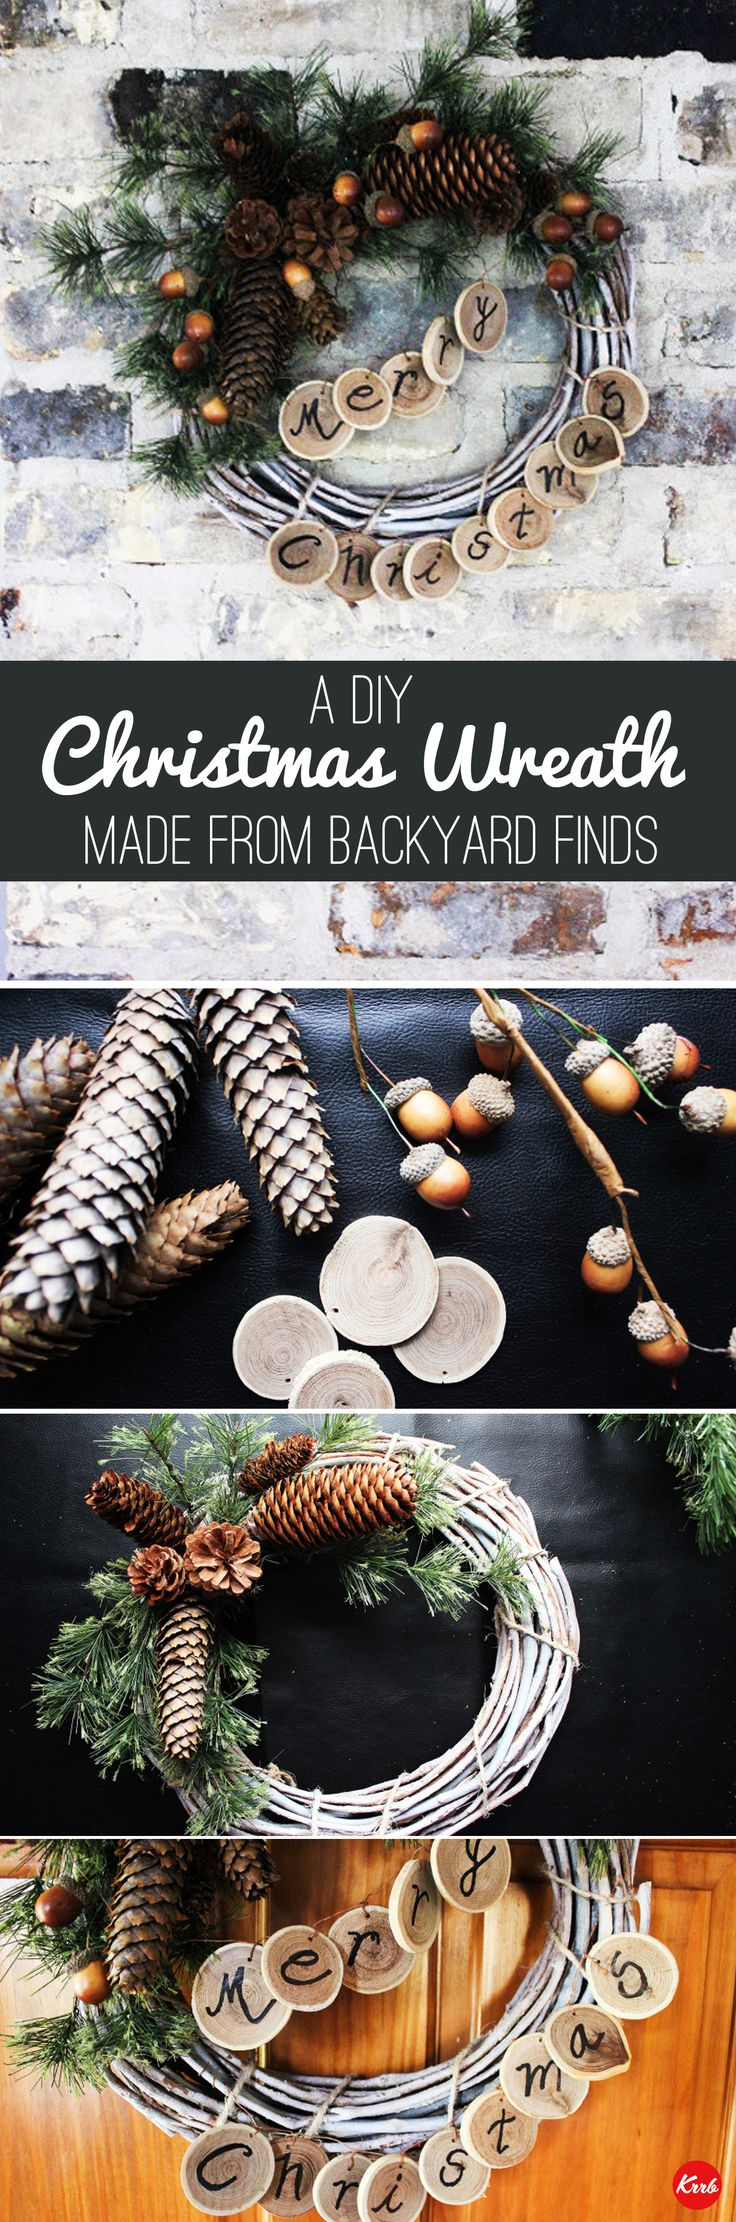 Save money by using your home's natural resources to design a wreath!